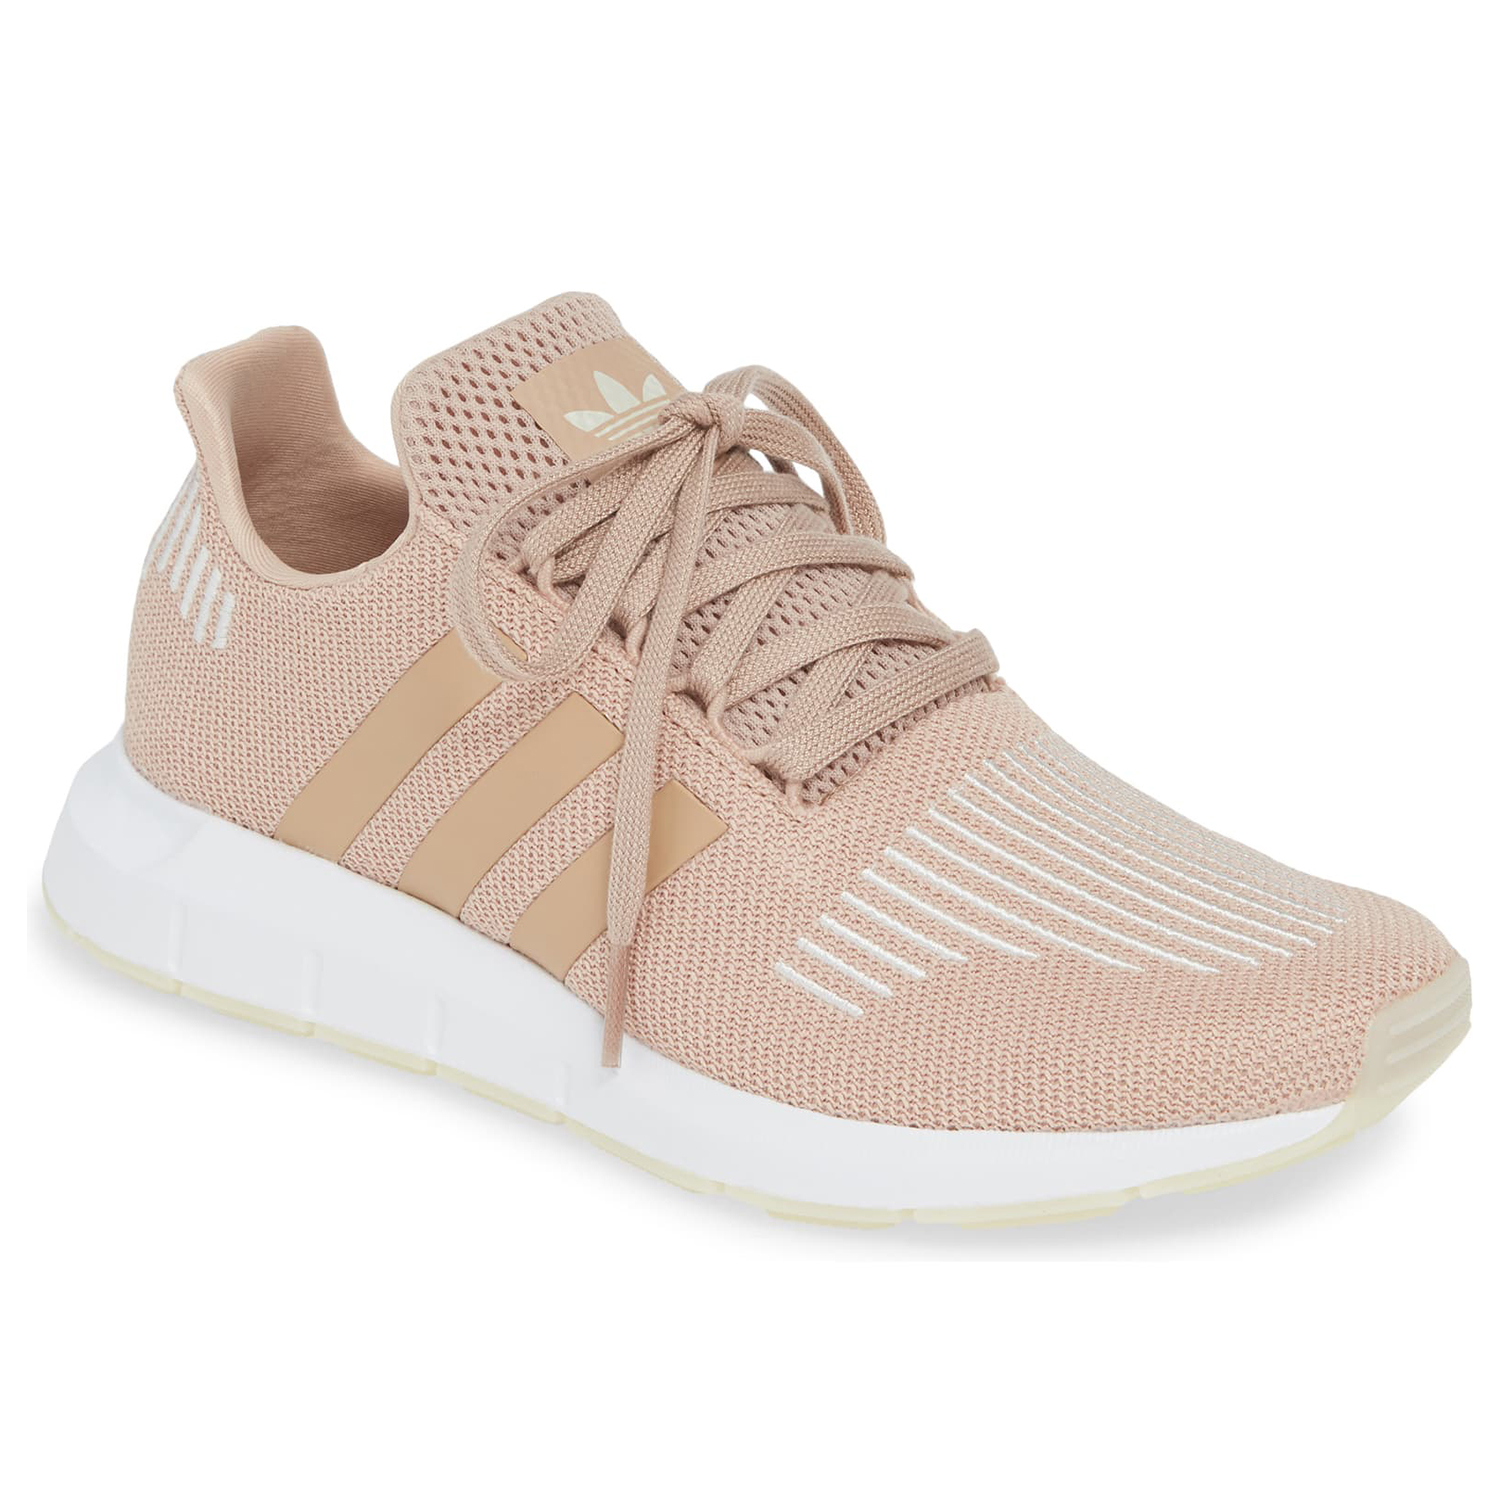 adidas Swift Run Sneaker Pearl